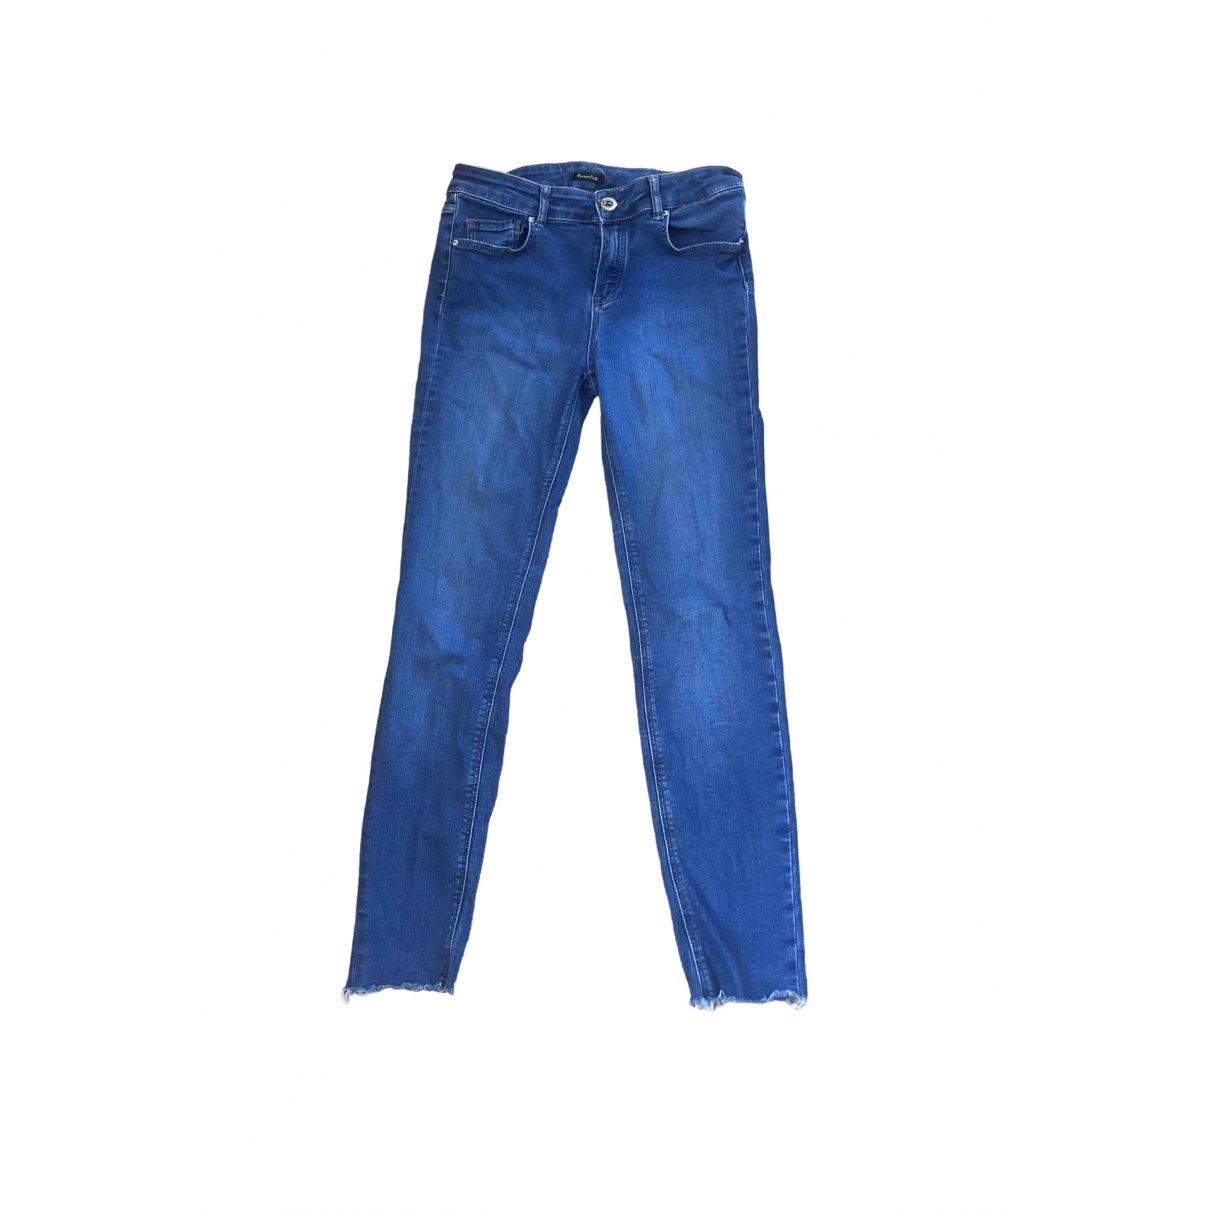 Massimo Dutti \N Blue Cotton - elasthane Jeans for Women 40 FR